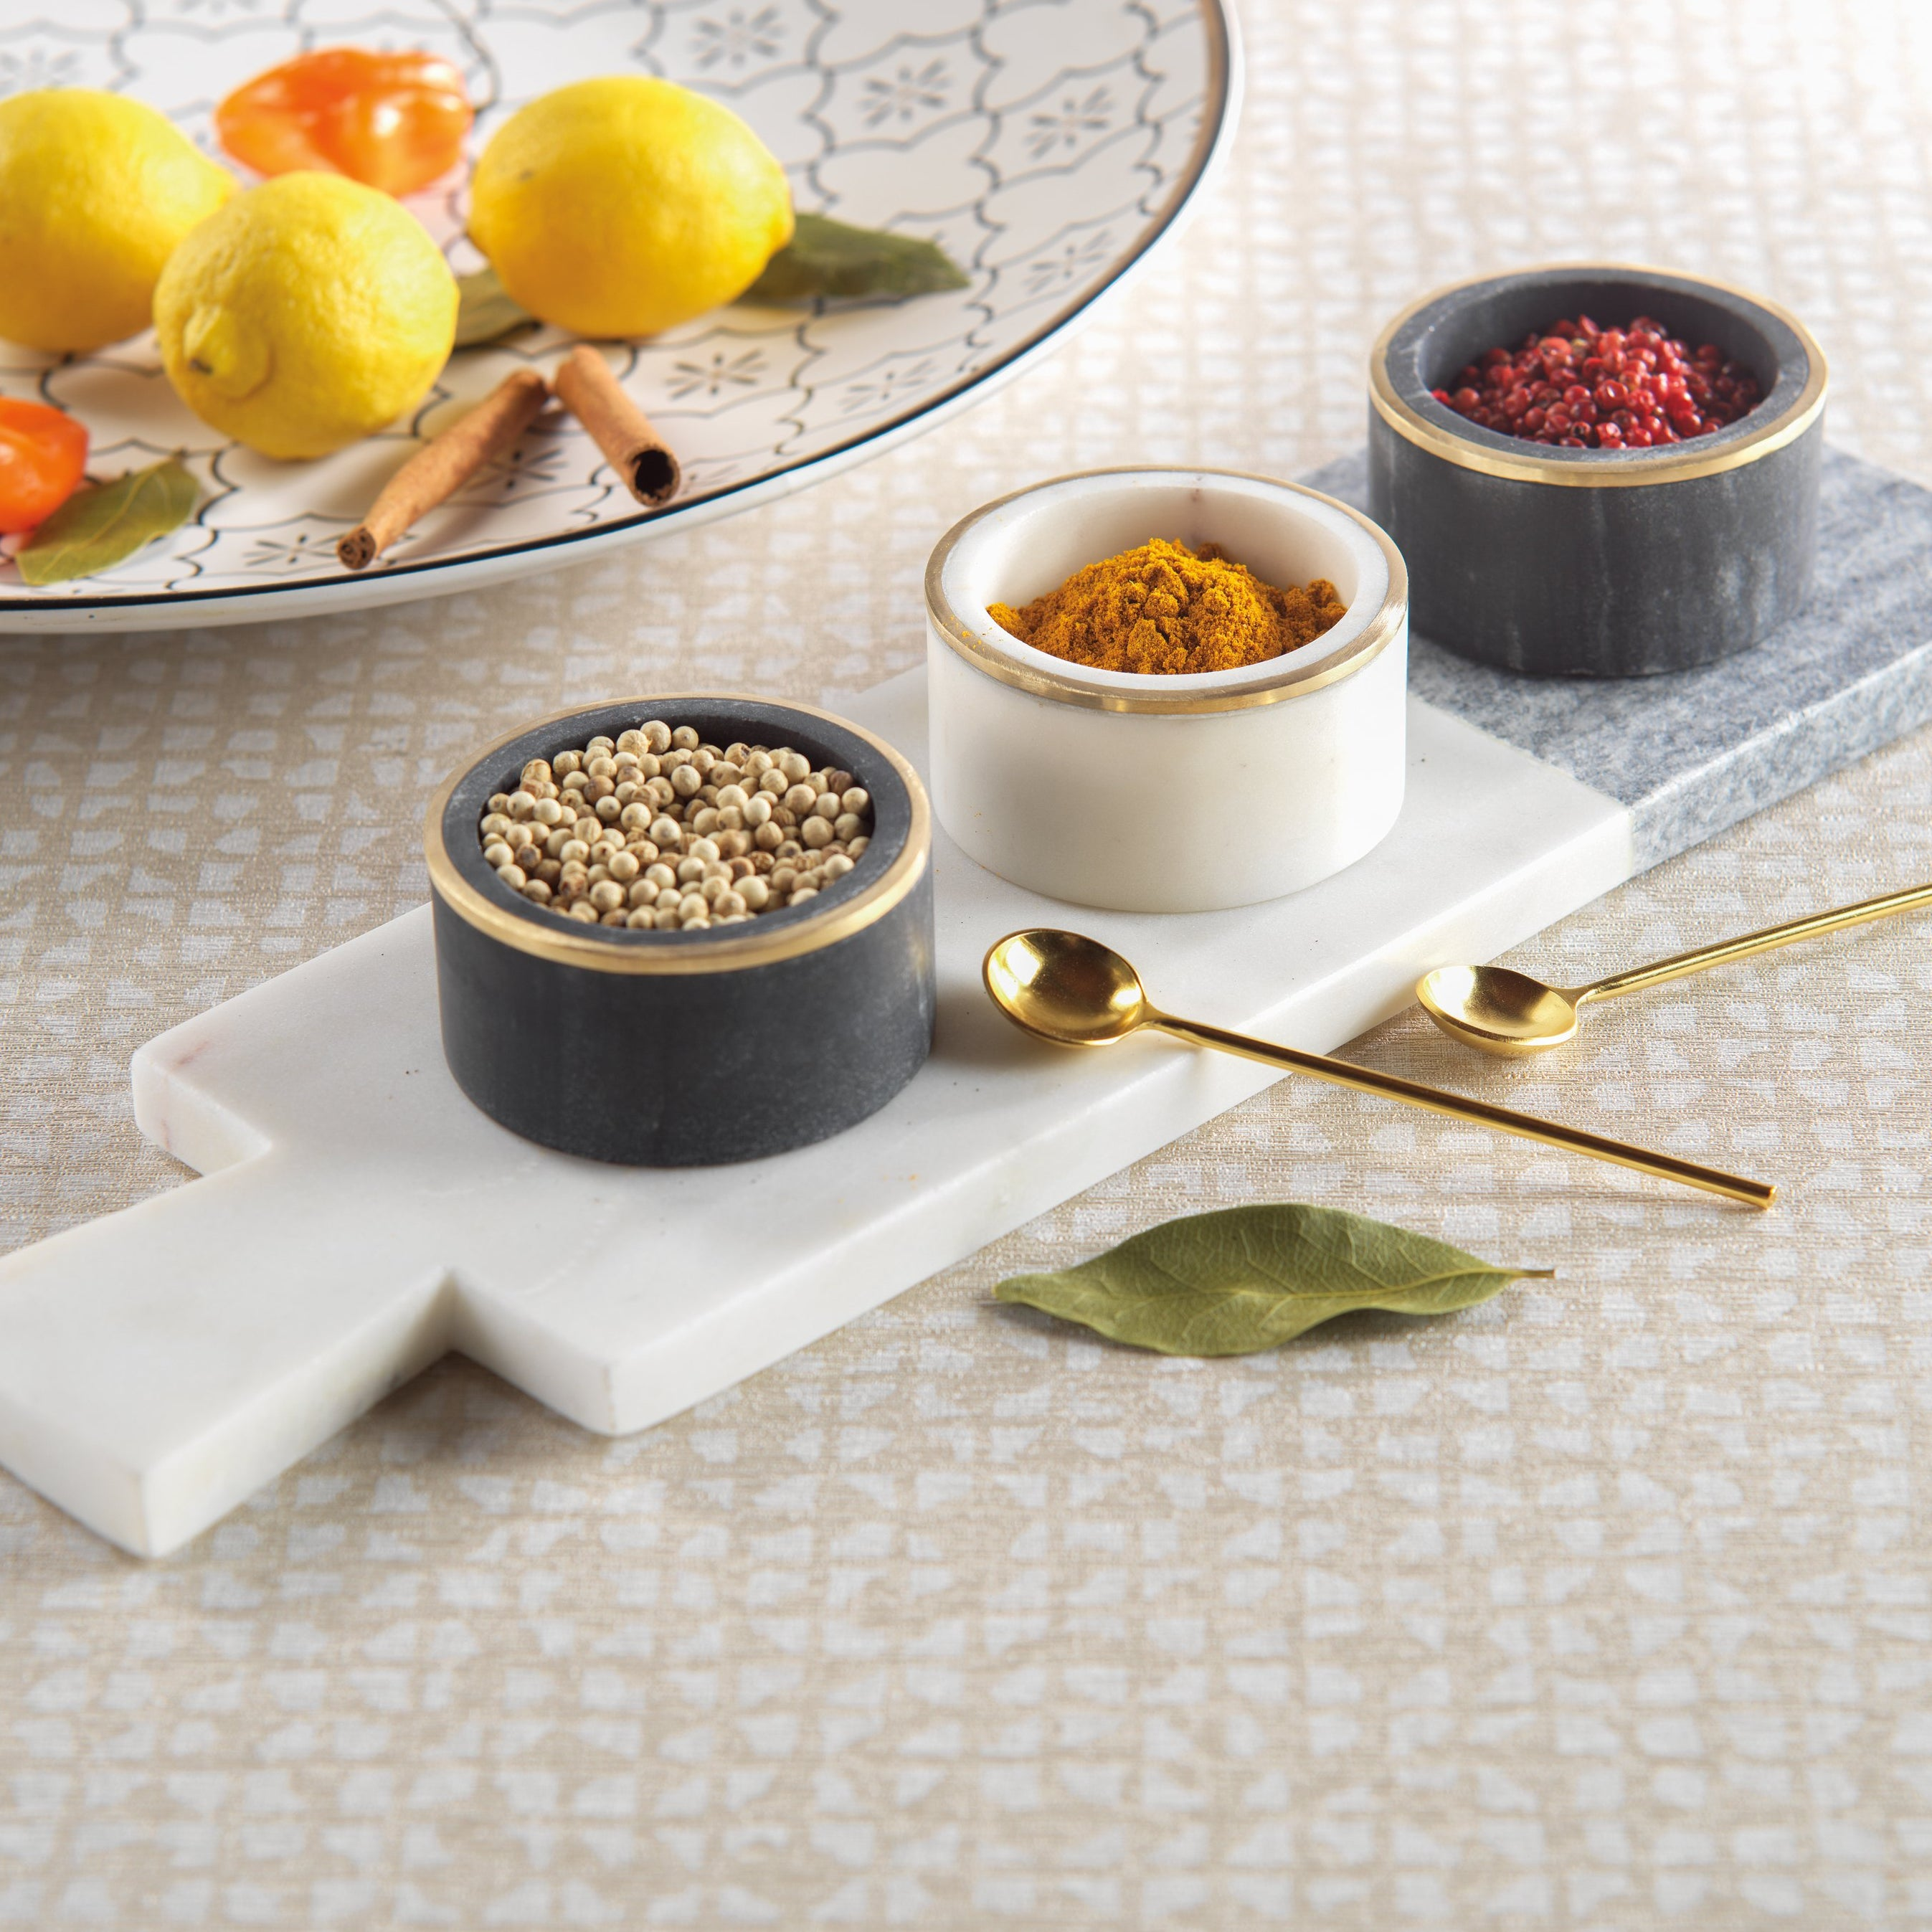 Makrana Two-Tone Condiment Set - CARLYLE AVENUE